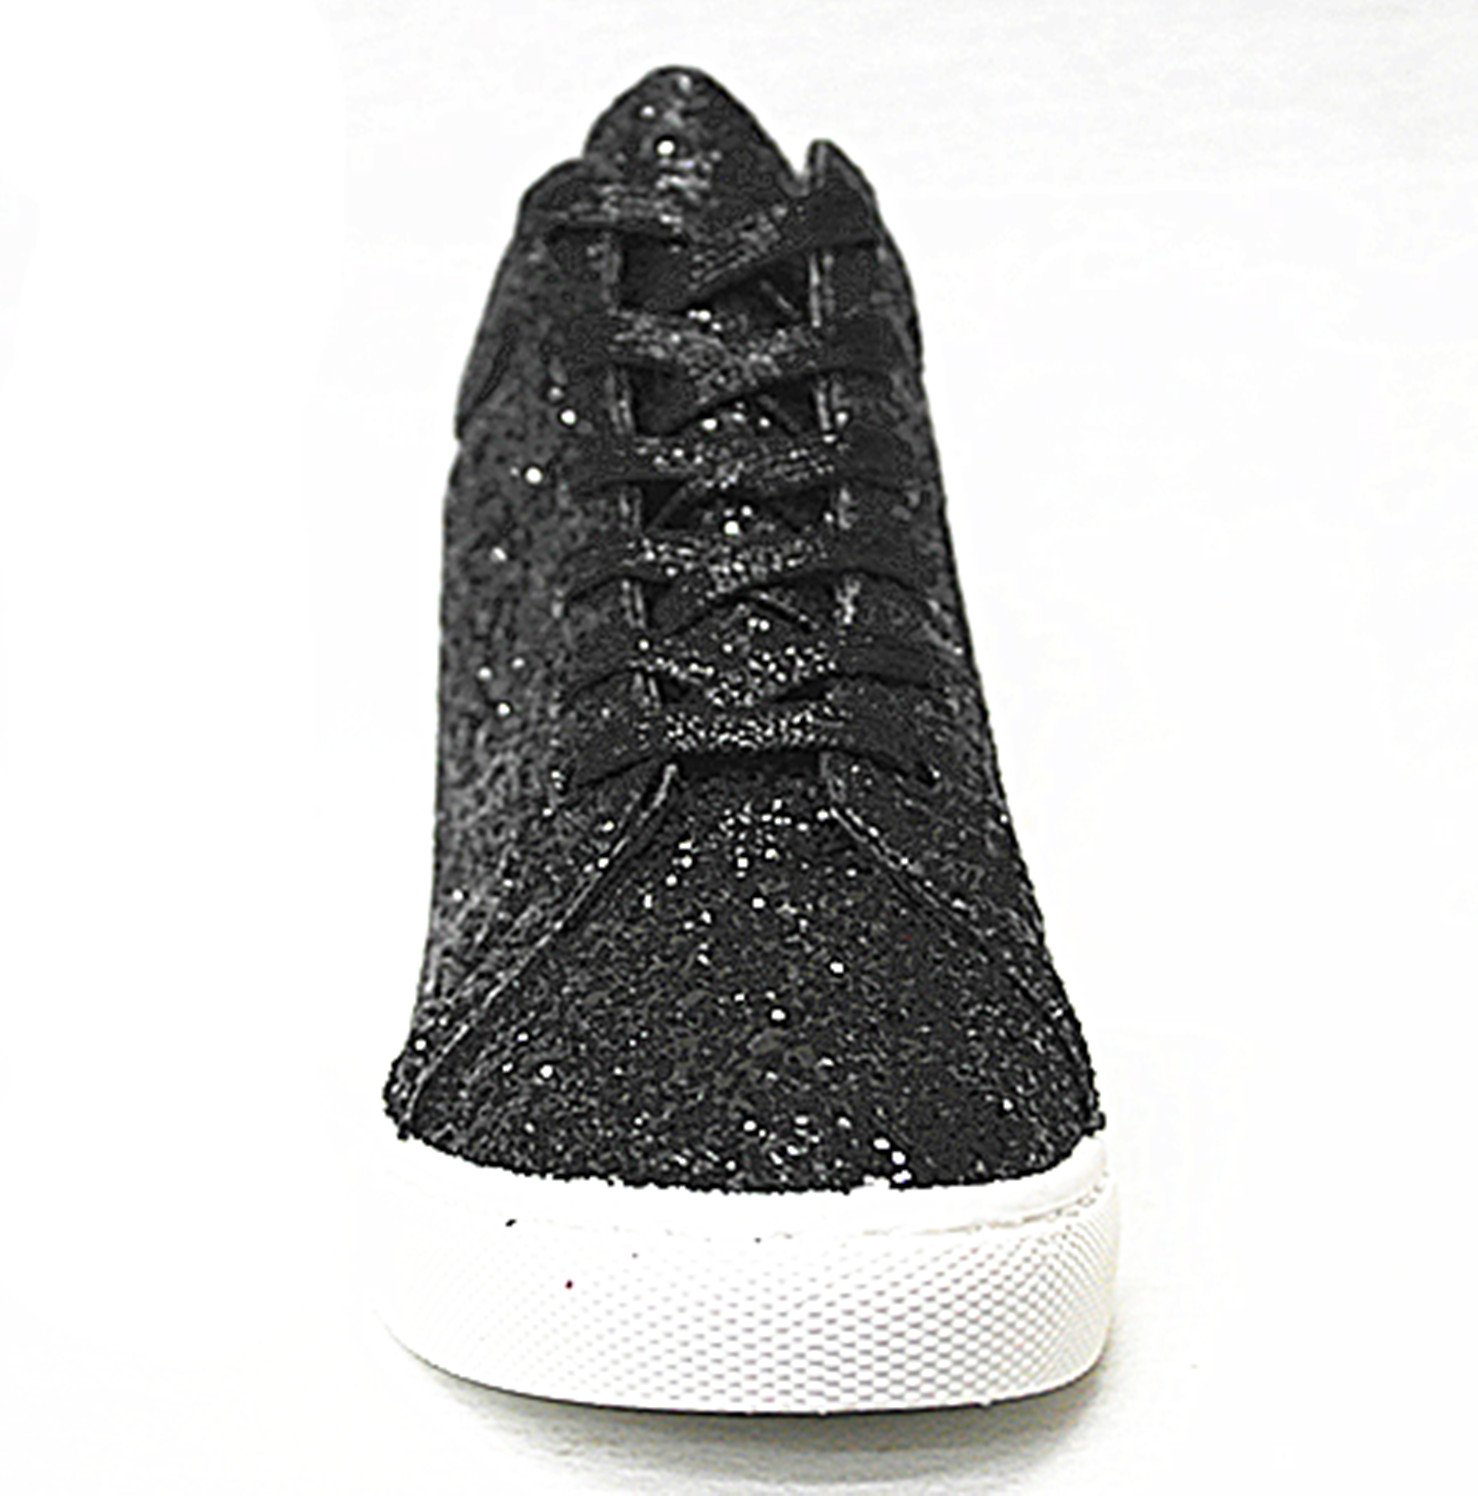 SF Forever Link Remy-18 Quilted Women's Jogger Sneaker-Lightweight Glitter Quilted Remy-18 Lace up Shoes New B07BJC79CB 6.5 B(M) US|Black-27 57a4bf